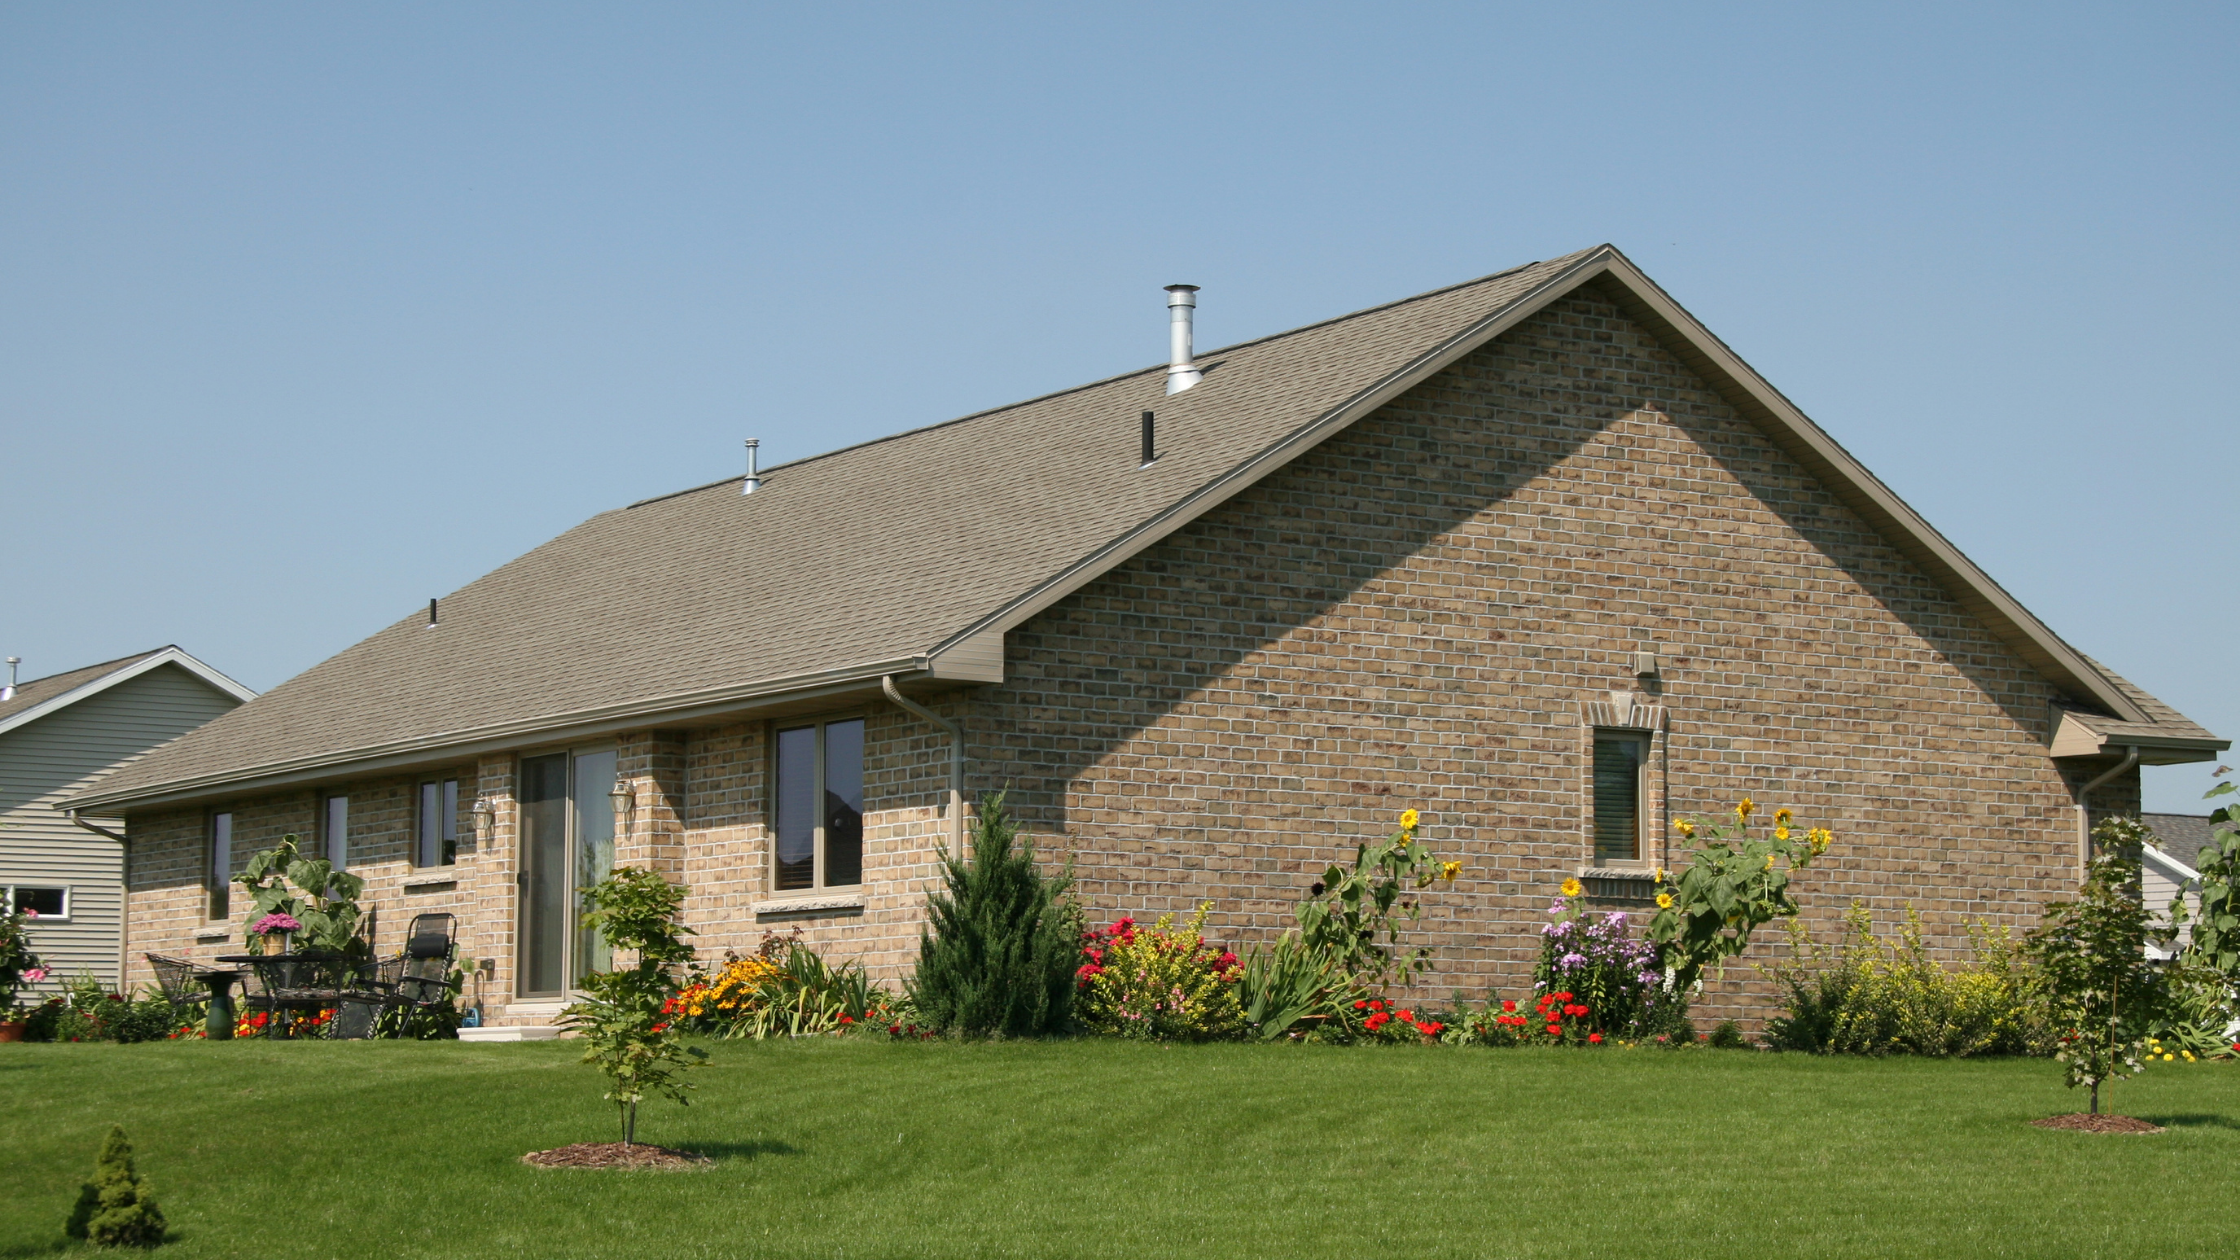 Keeping Your Foundation in Mind When Landscaping